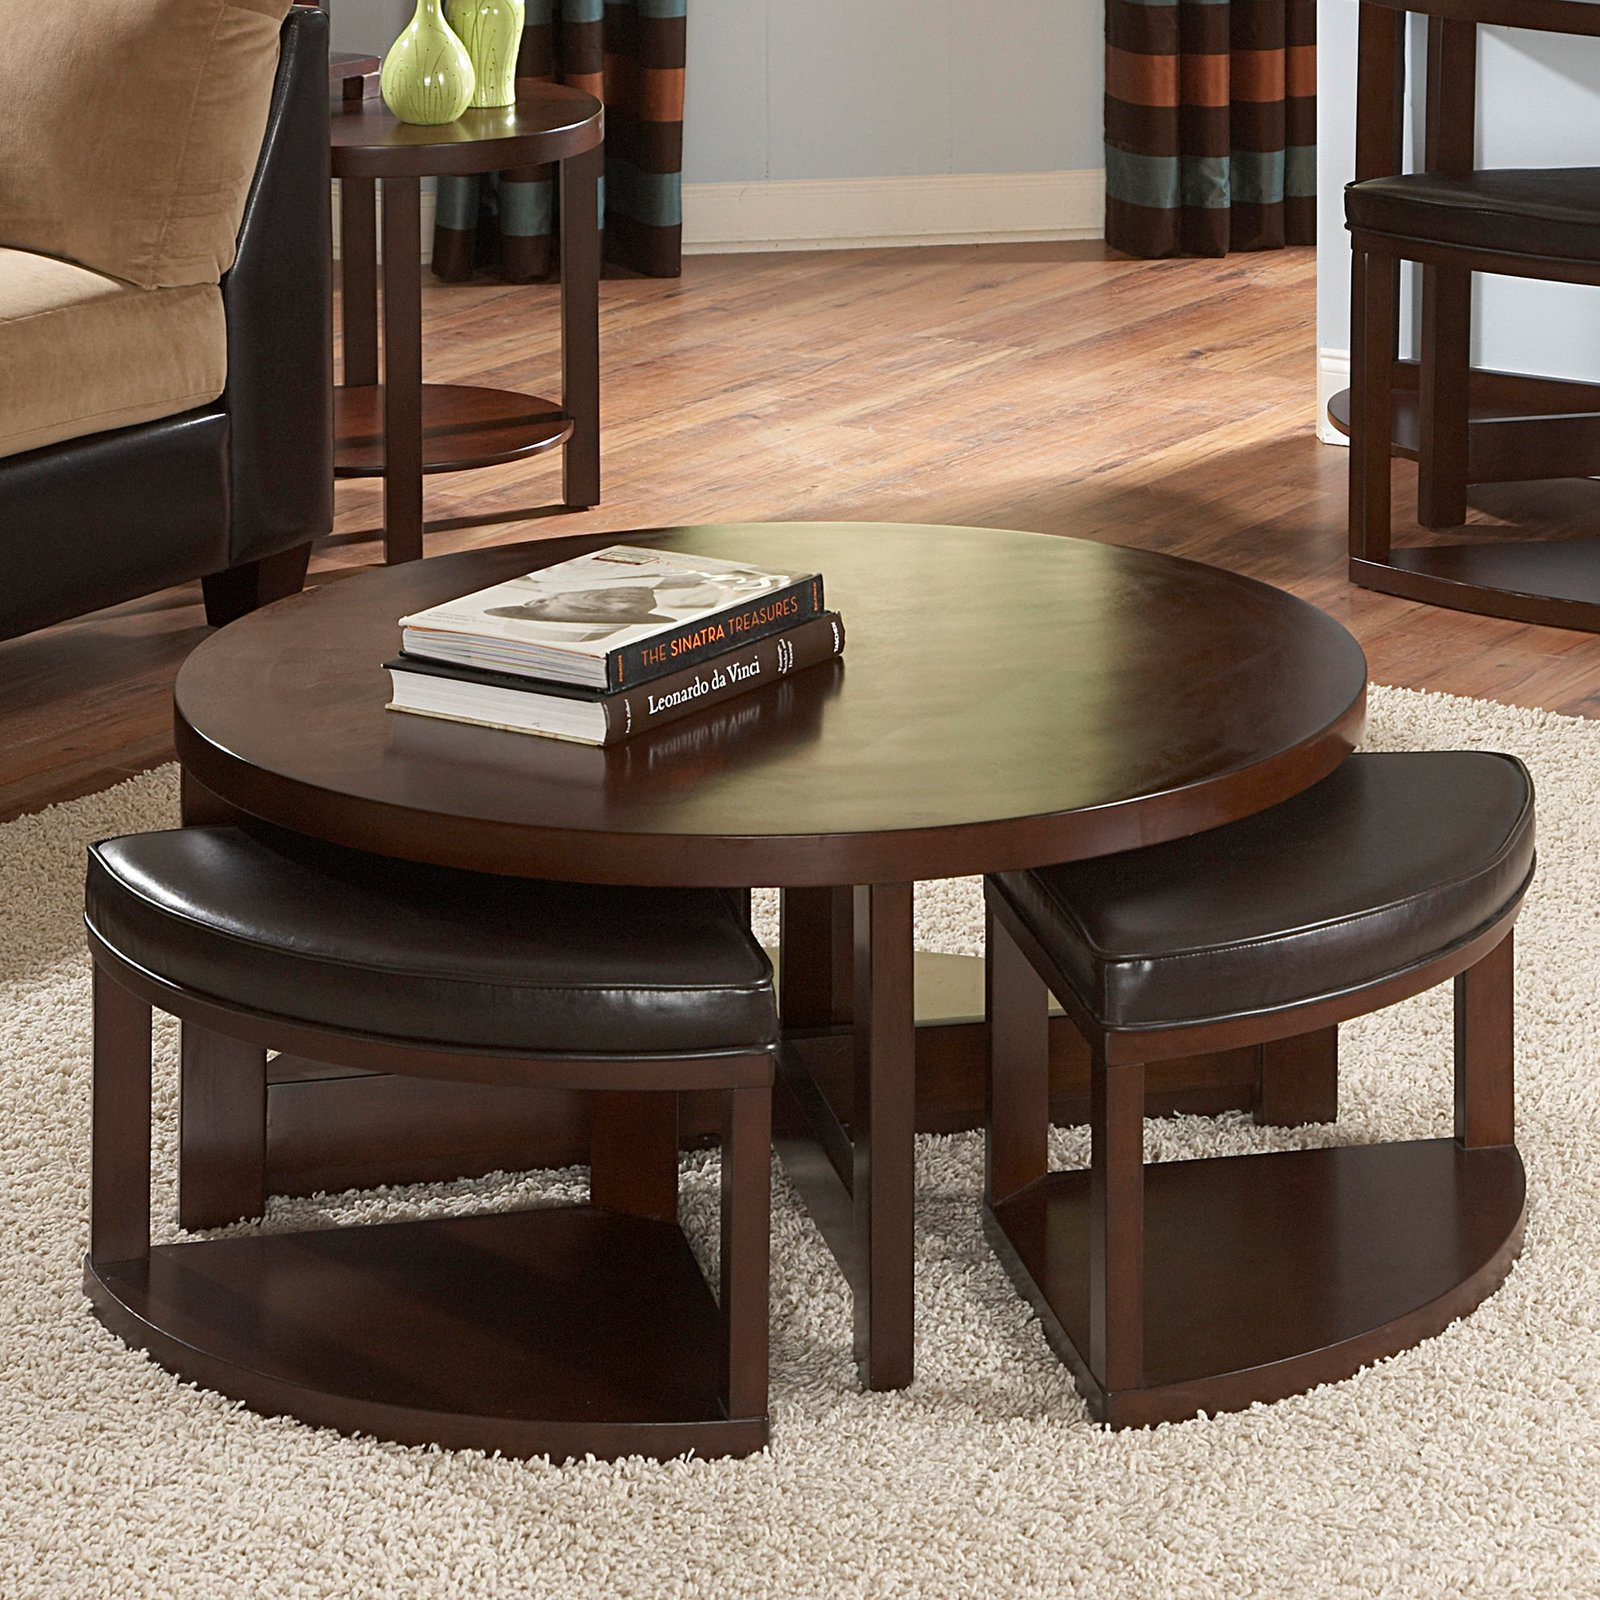 Weston Home Coltrane Cocktail Table with 4 Ottomans, Cherry by Topline